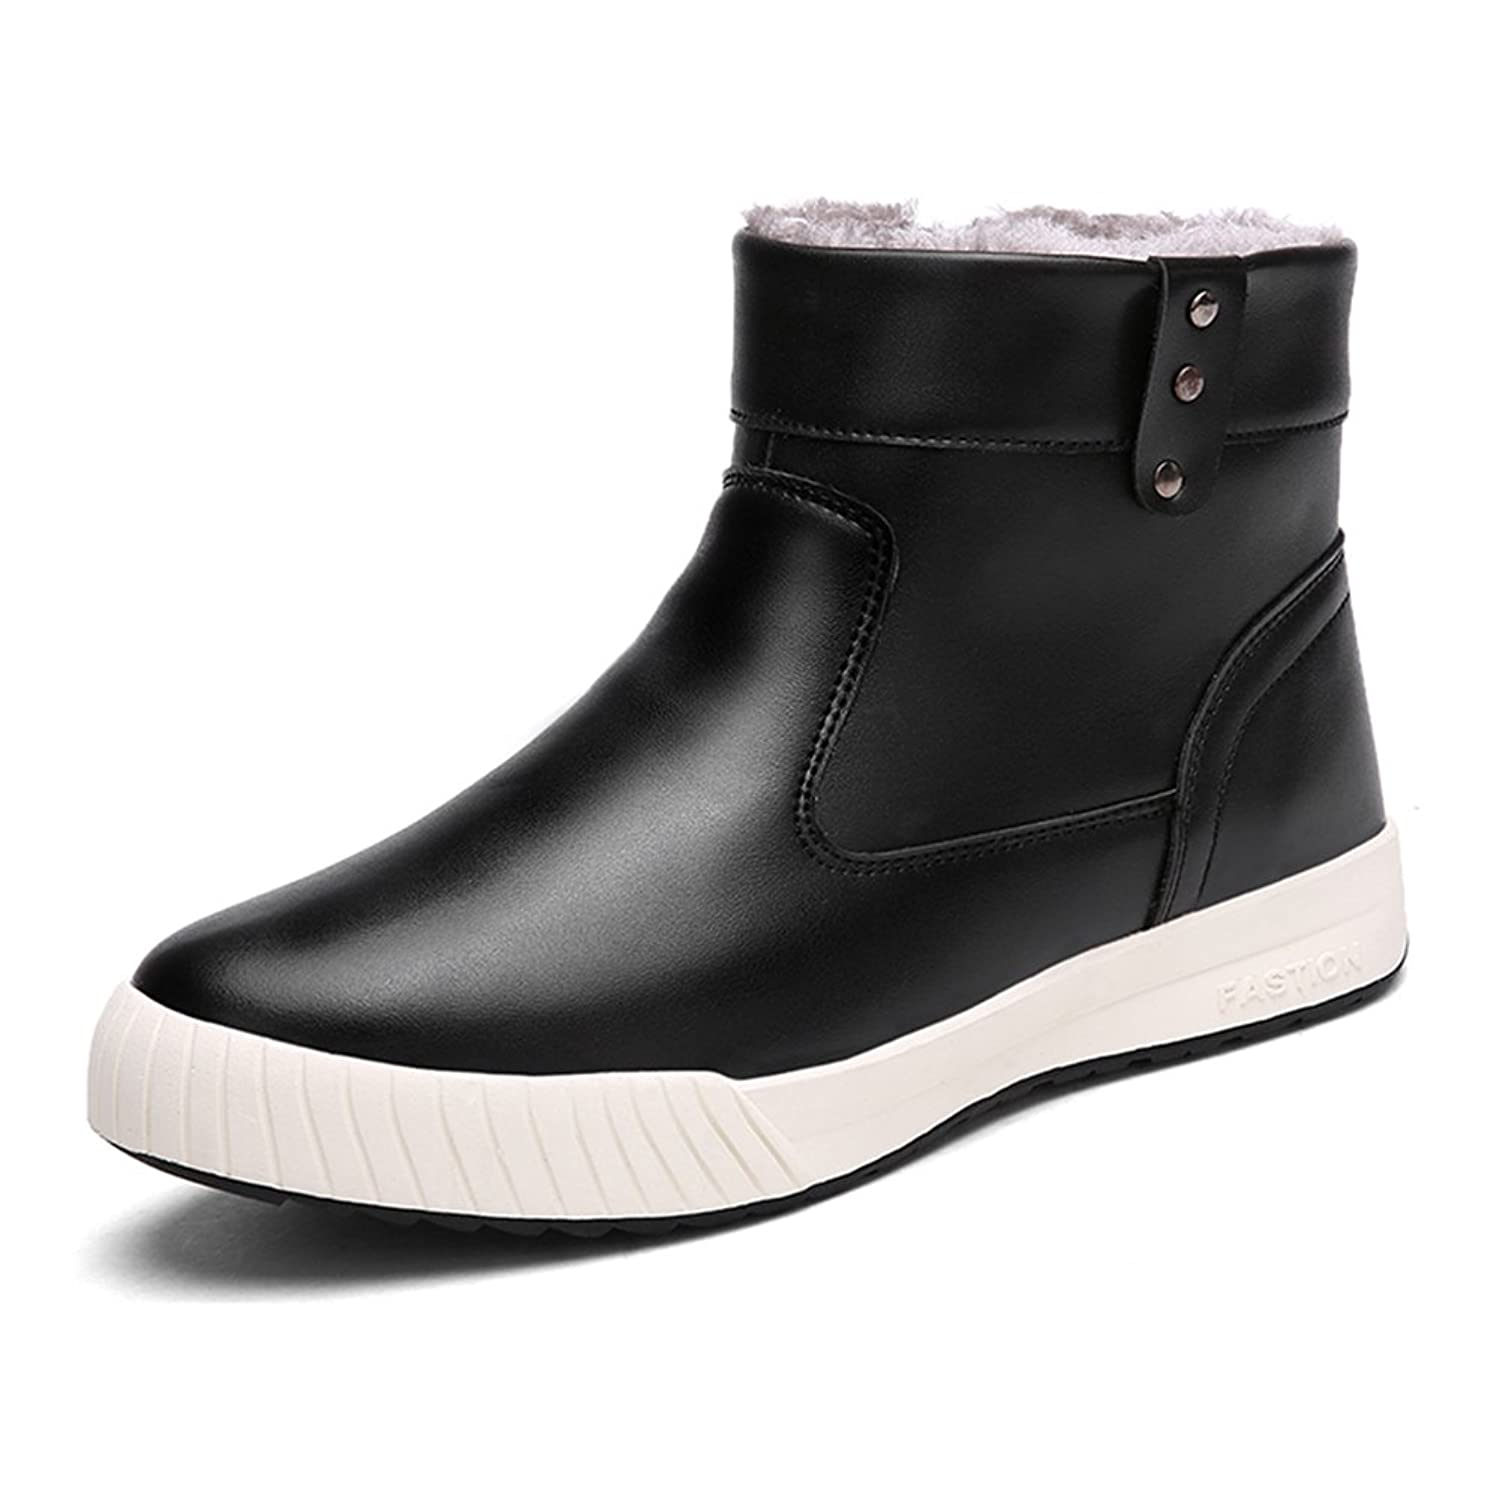 Mens Waterproof Anti-Slip Casual Snow Boots With Fully Fur Lined High Top (7 D(M) Men=9.63''Foot Black)